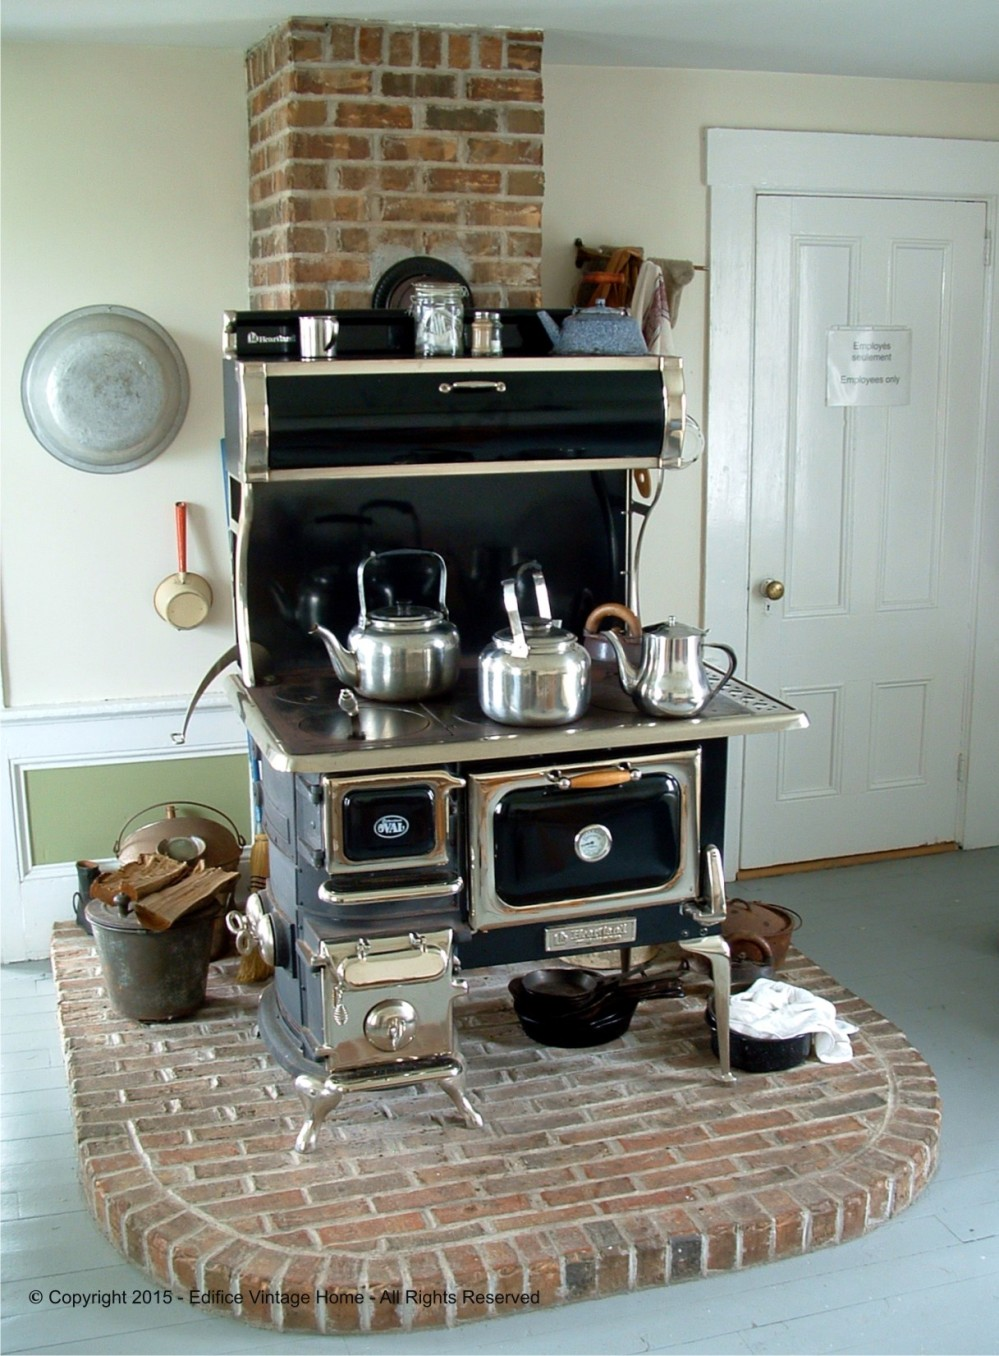 Antique Stoves Copyright 2015 Edifice 7